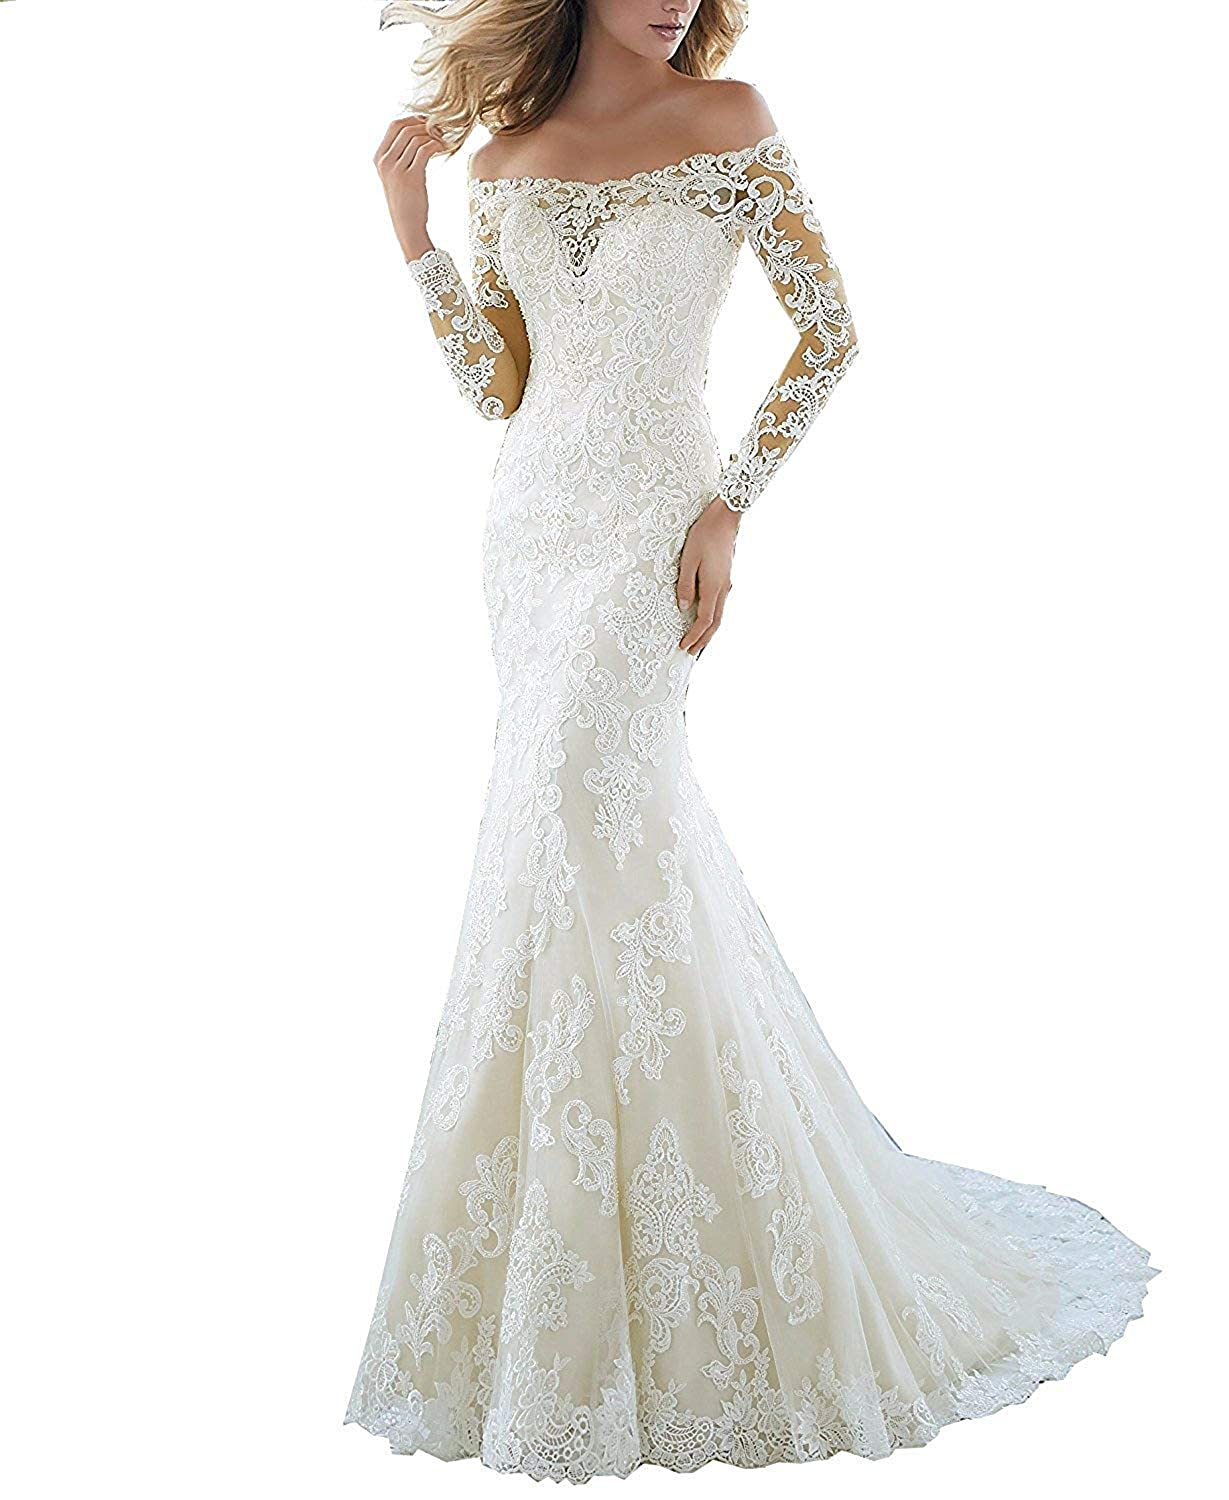 Ivory_style3 CharmingBridal Women's Off Shoulder Lace Wedding Dress Mermaid Bridal Gowns